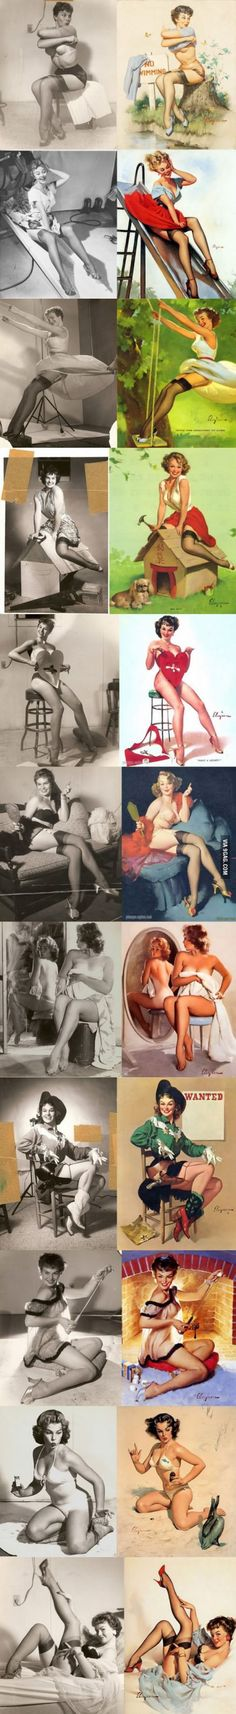 40's pin-up models have been 'edited' in the painting for the sake of advertising far before the era of Photoshop.